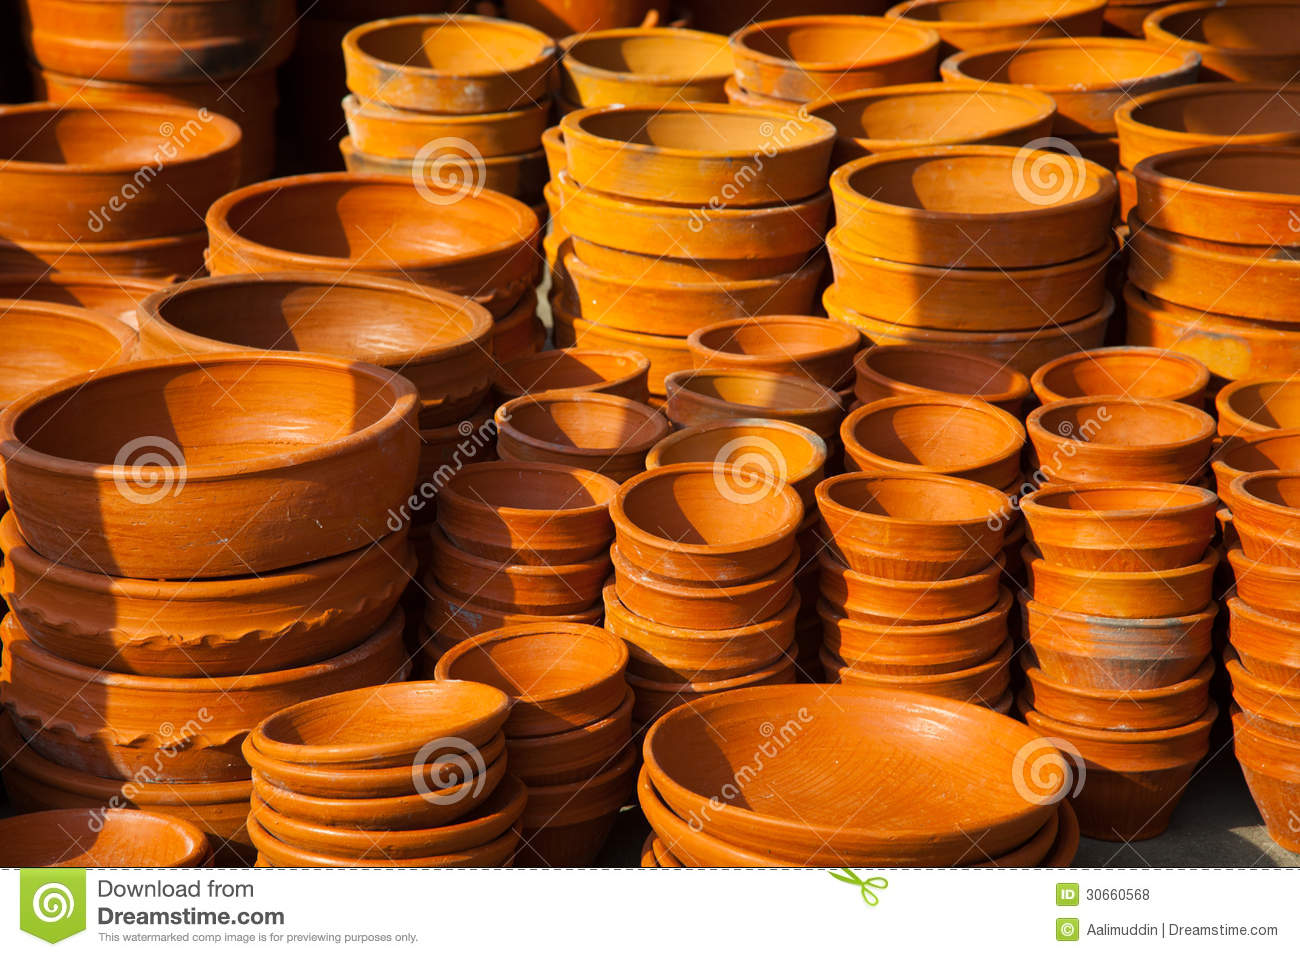 What Are Some Types of Cottage Industries?